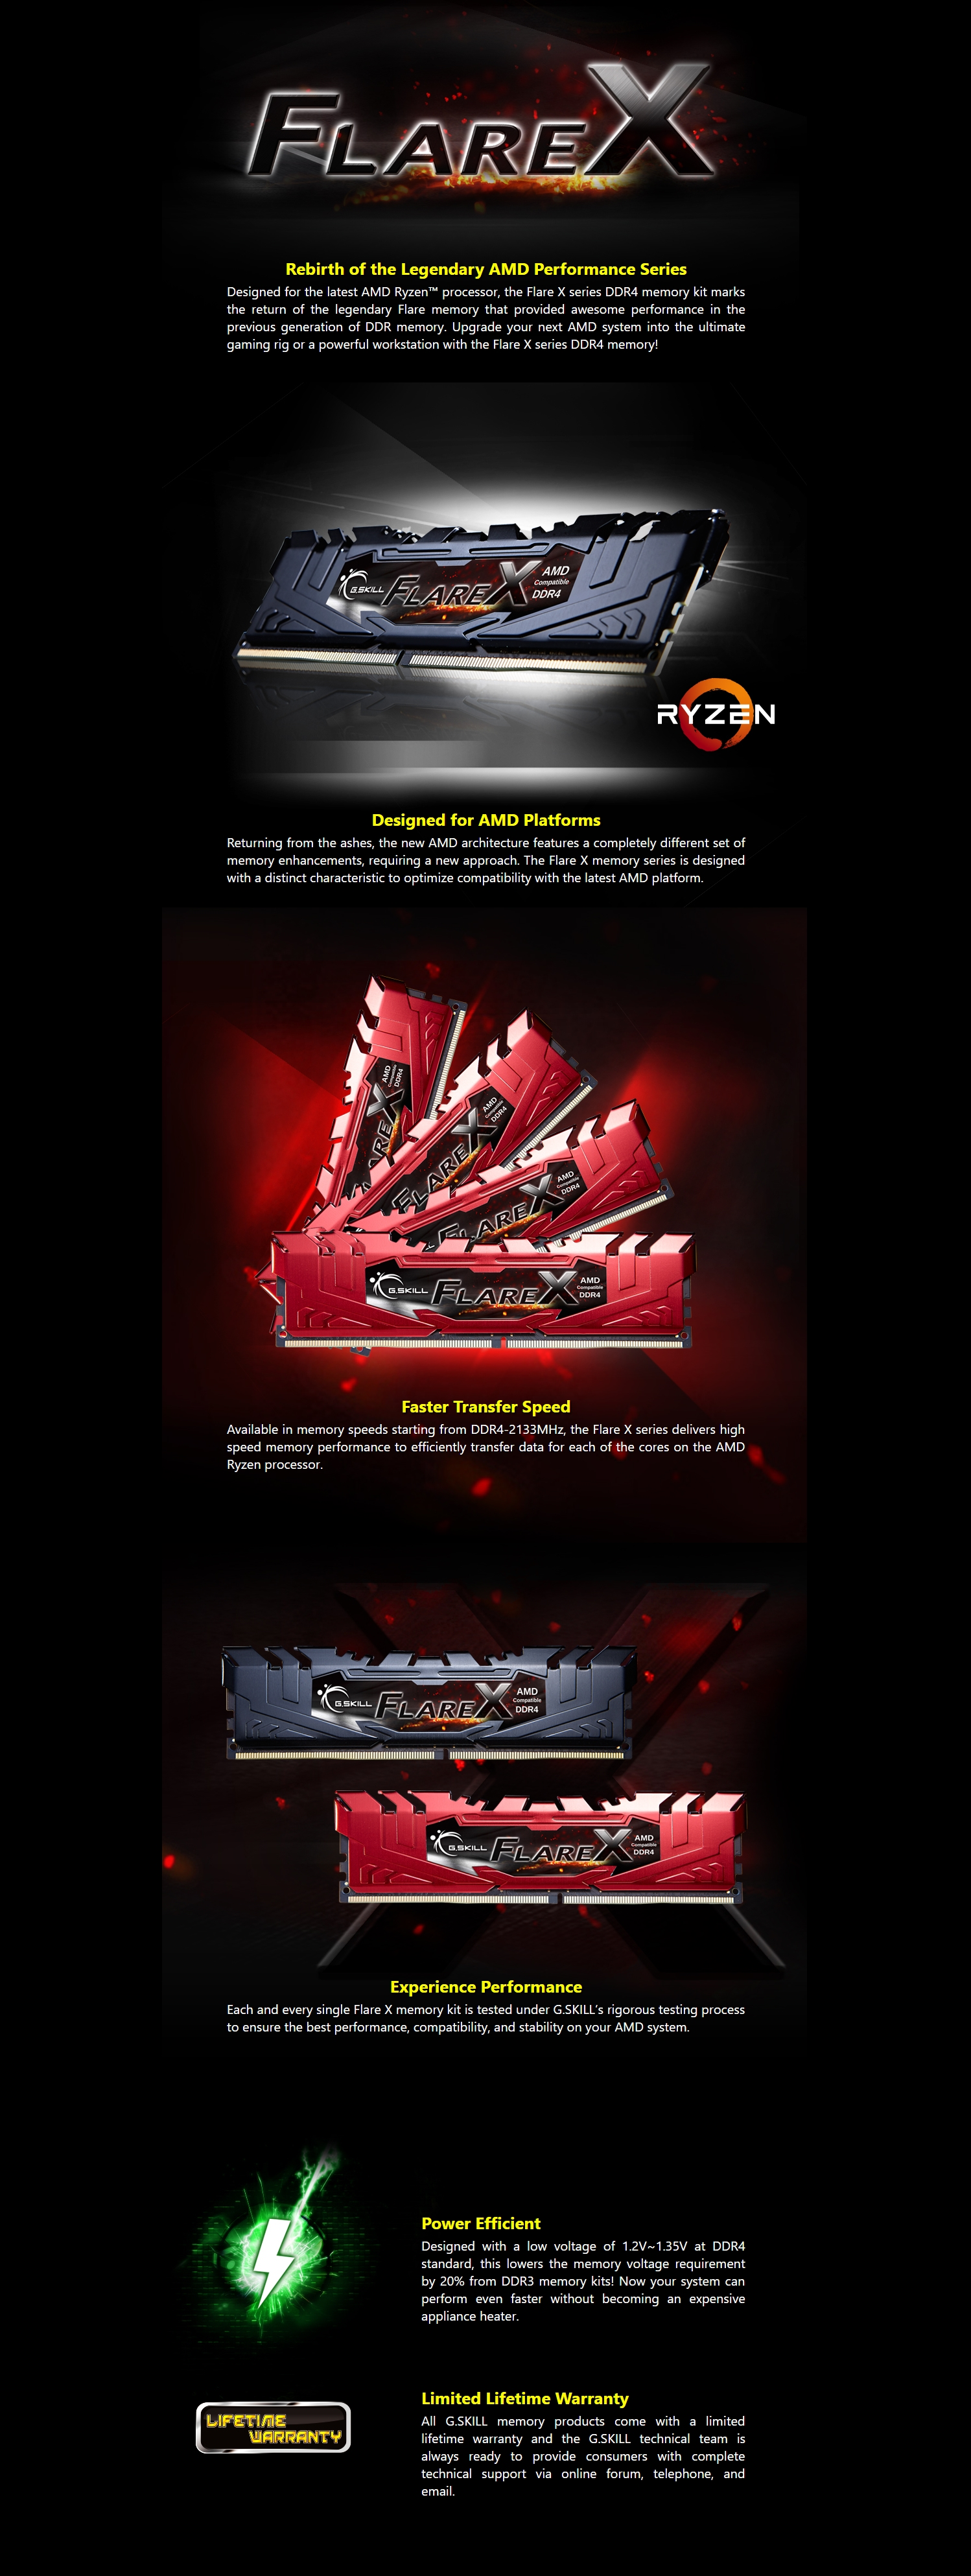 A large marketing image providing additional information about the product G.Skill 16GB Kit (2x8GB) DDR4 Flare X C14 3200MHz (For AMD) - Additional alt info not provided